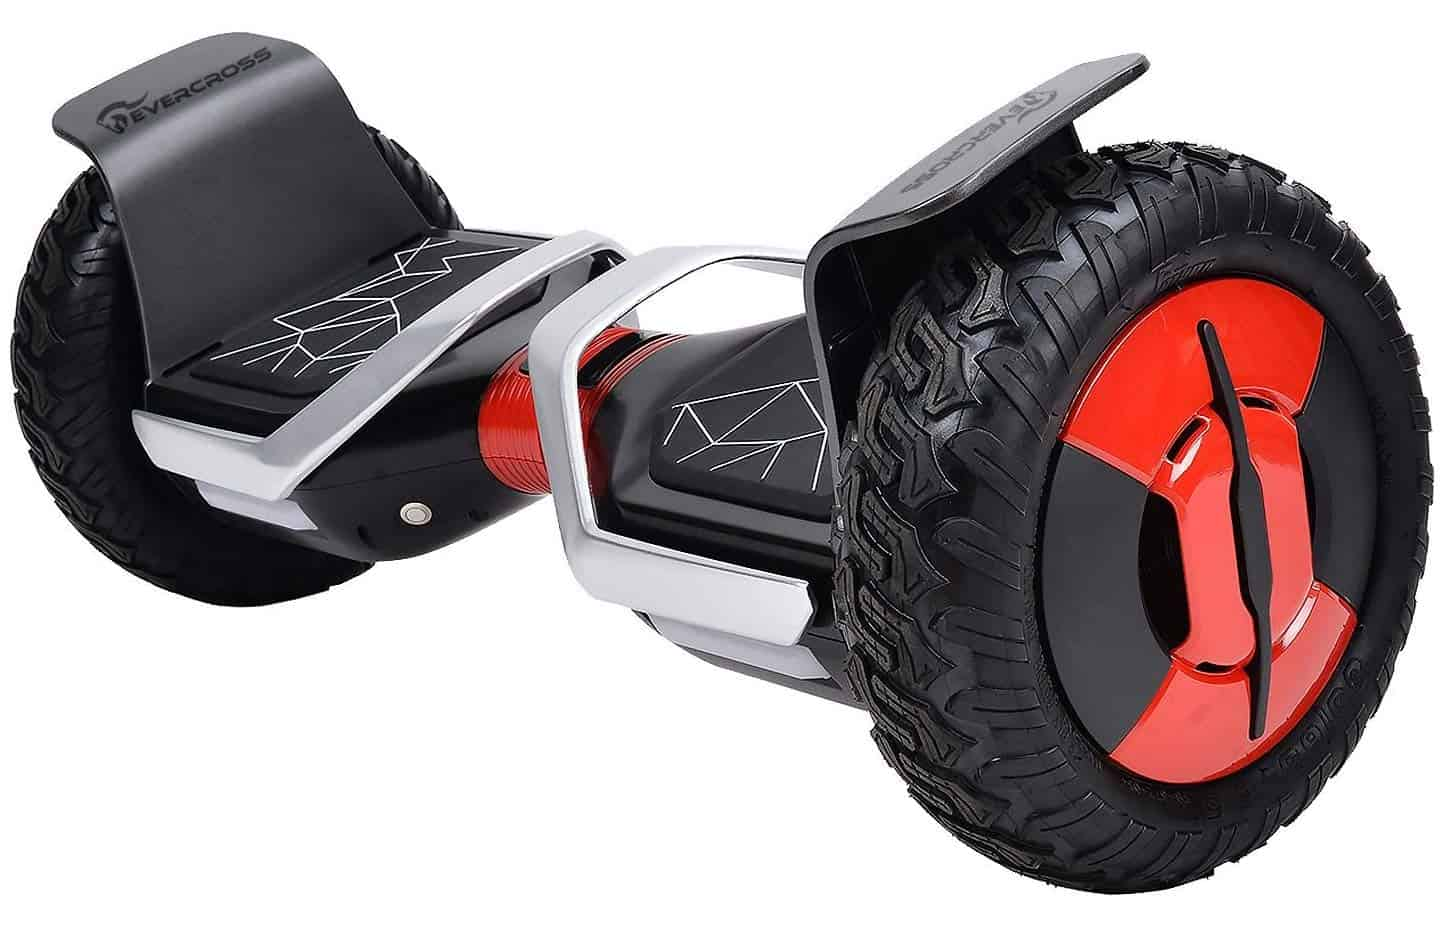 Best Hoverboard for Off-Road Use – EVERCROSS